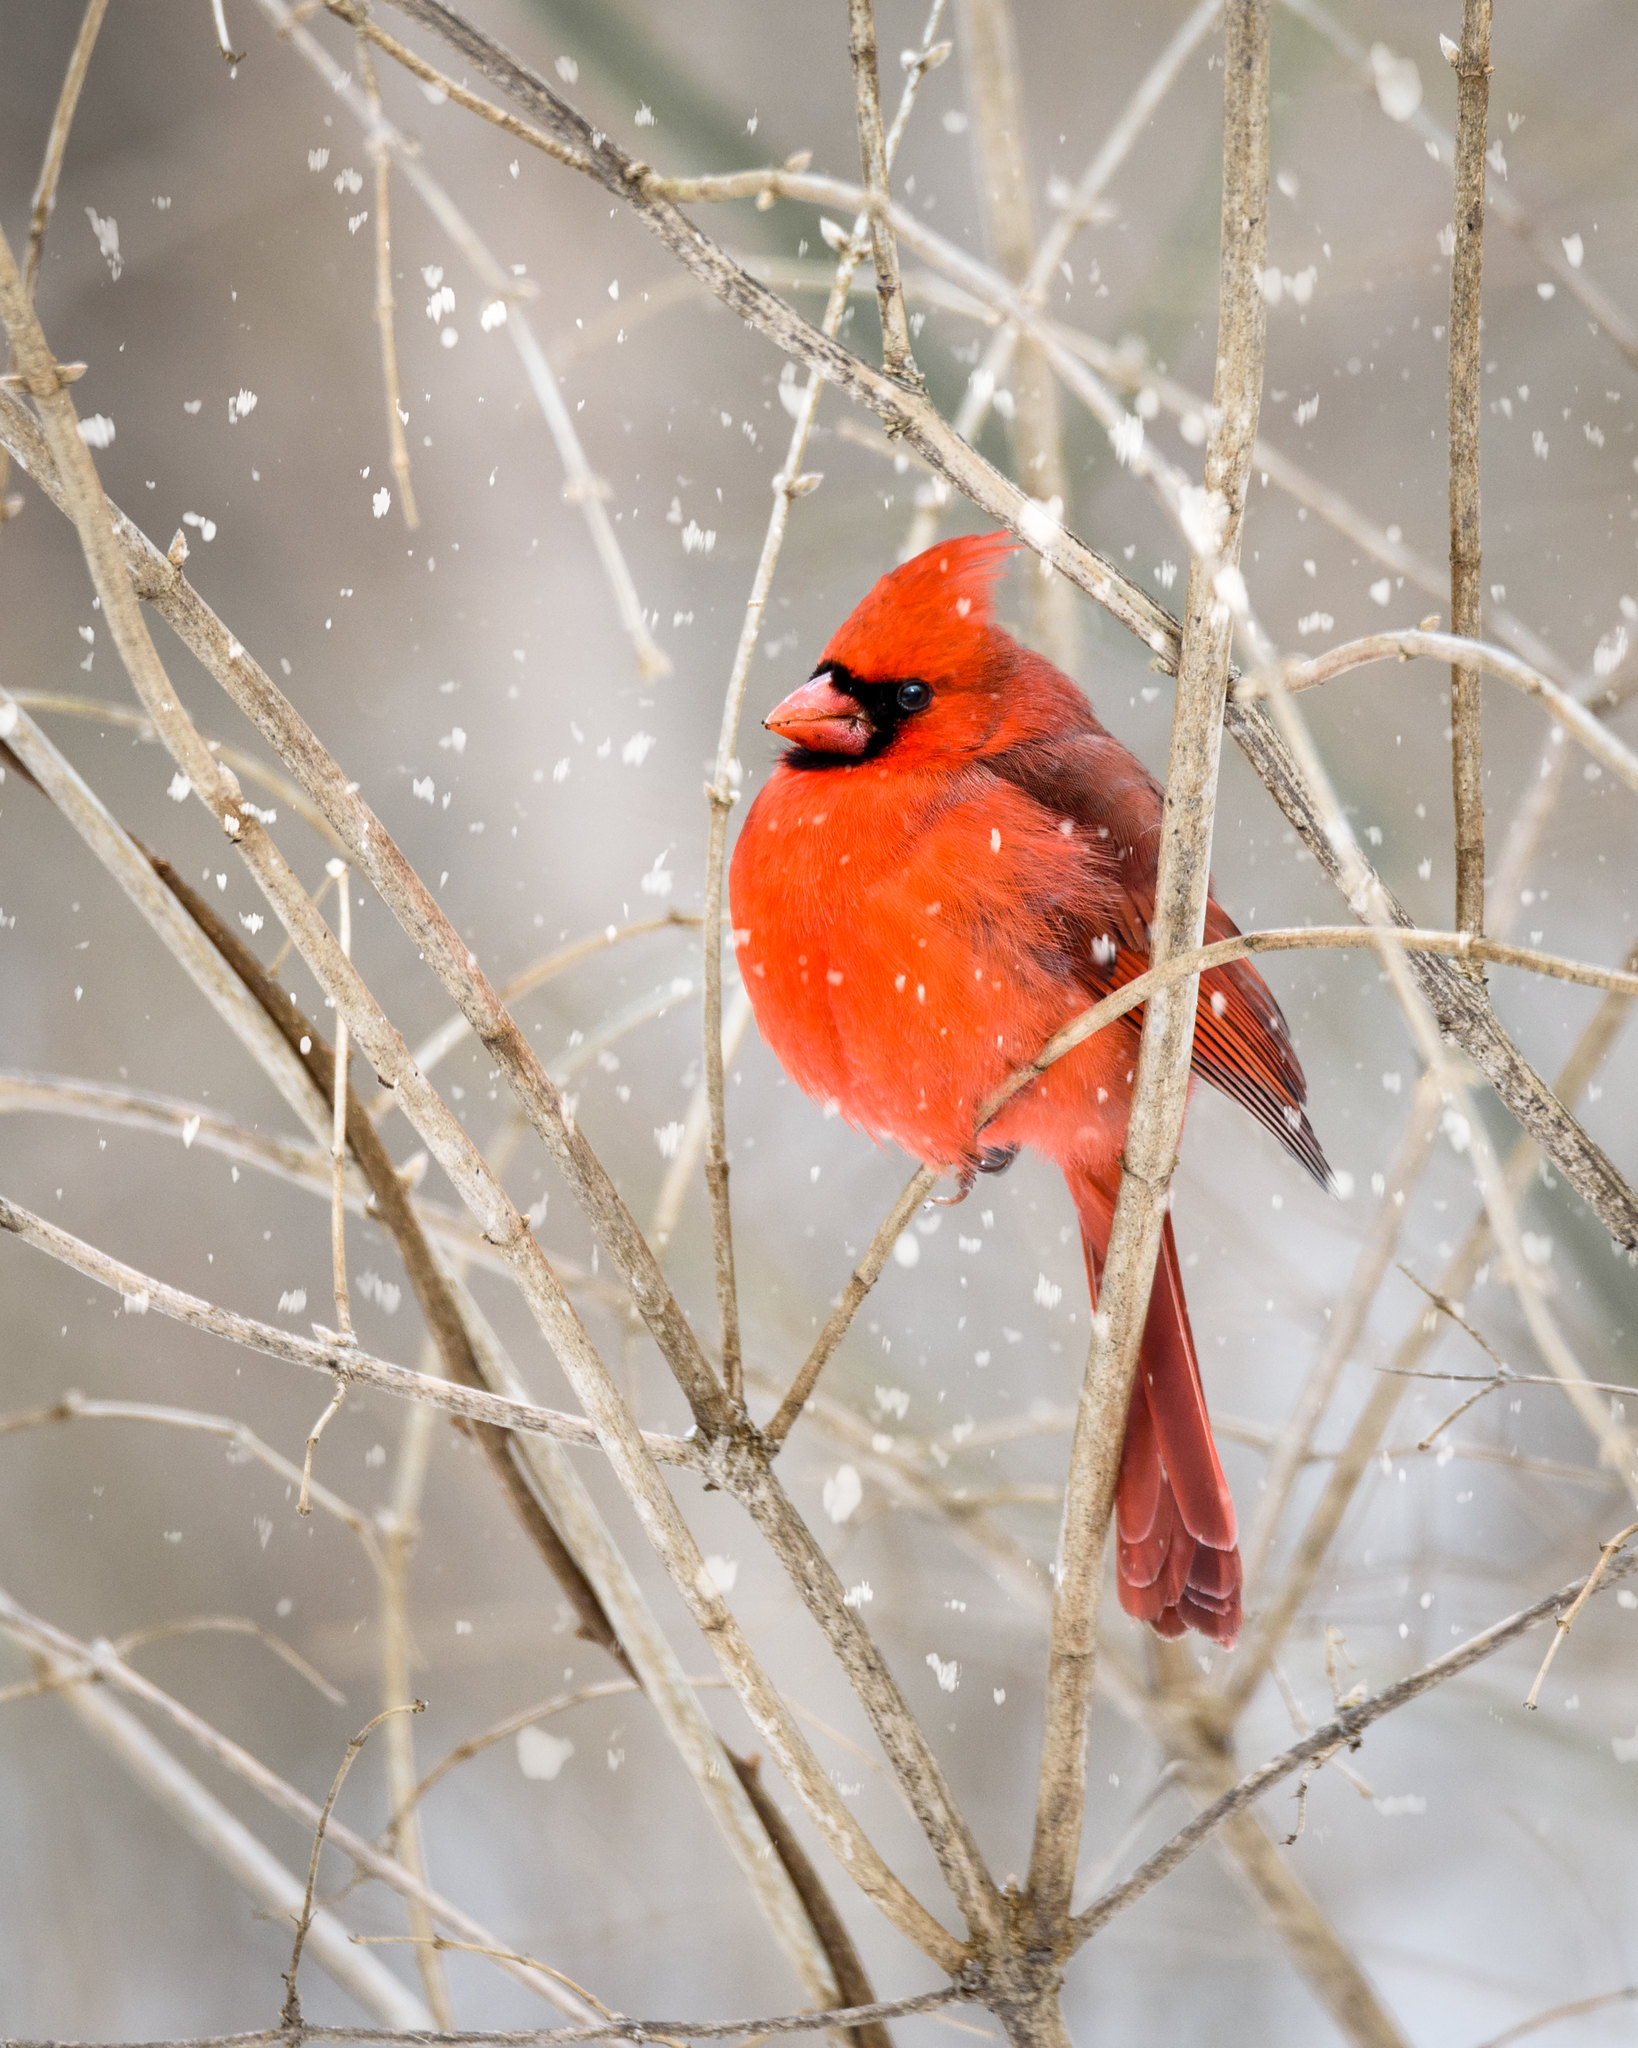 Male Cardinal during a snowy lunch walk at Hills and Dales MetroPark.